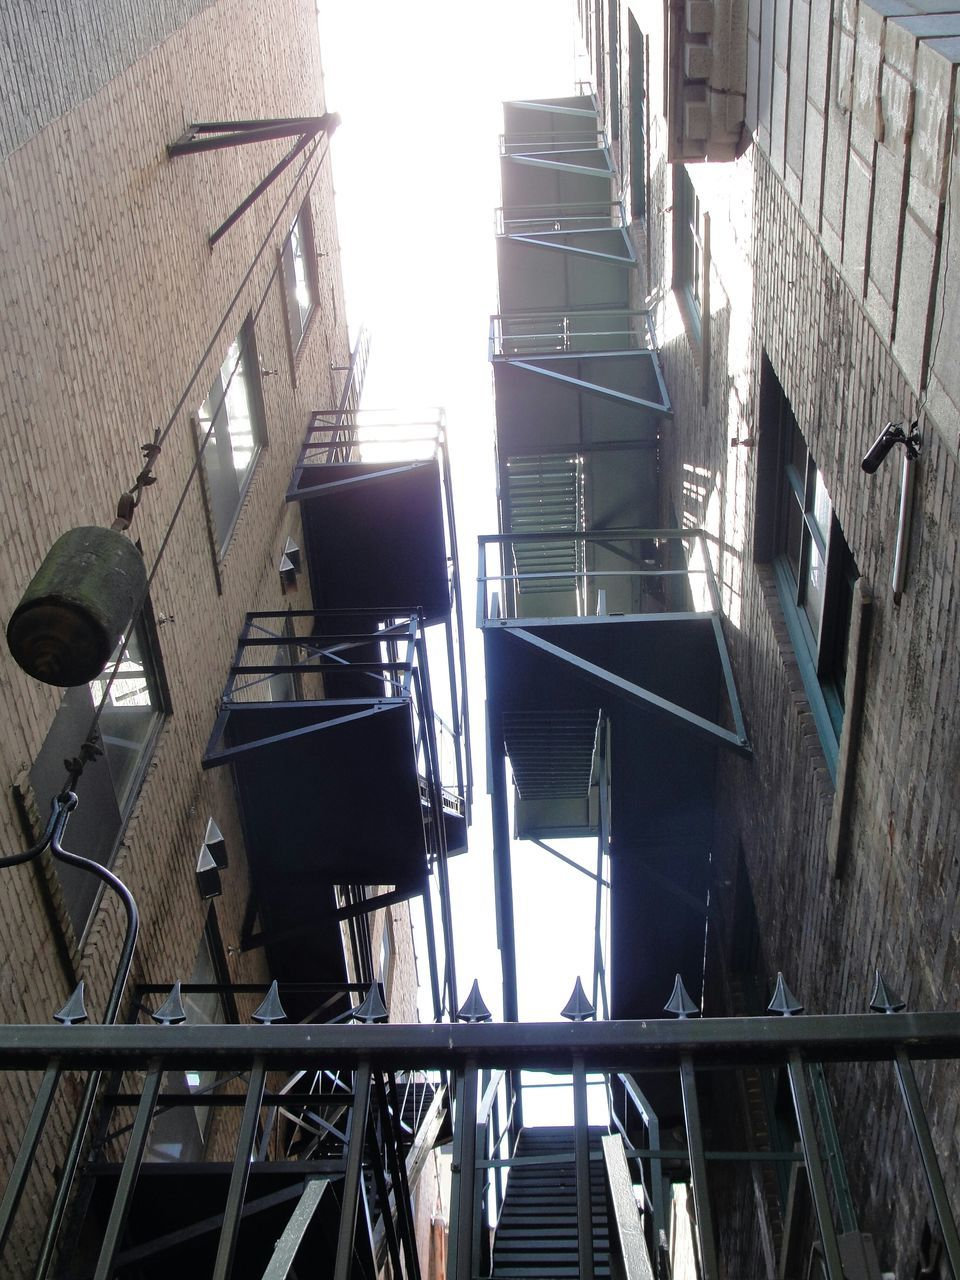 Low Angle View Of Fire Escape In Buildings Against Sky